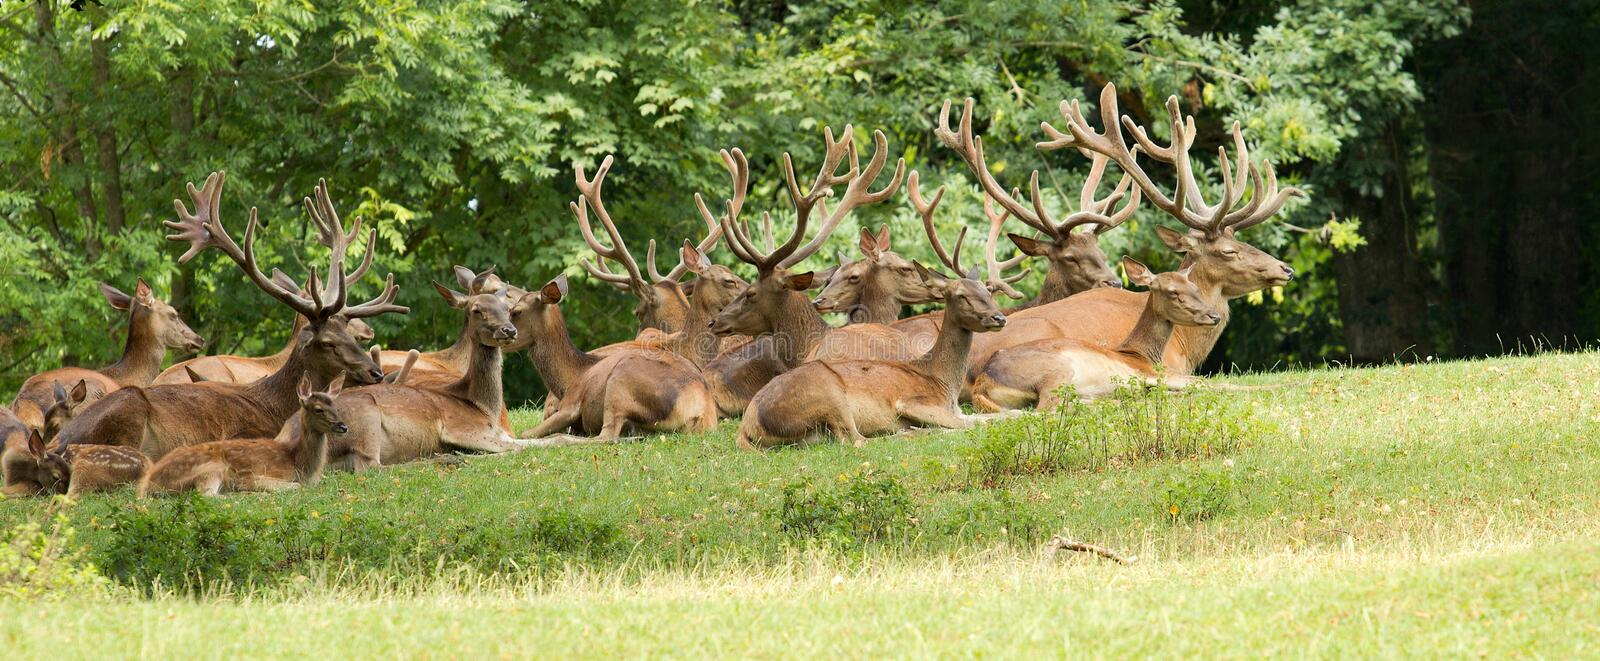 Wild deer group royalty free stock image